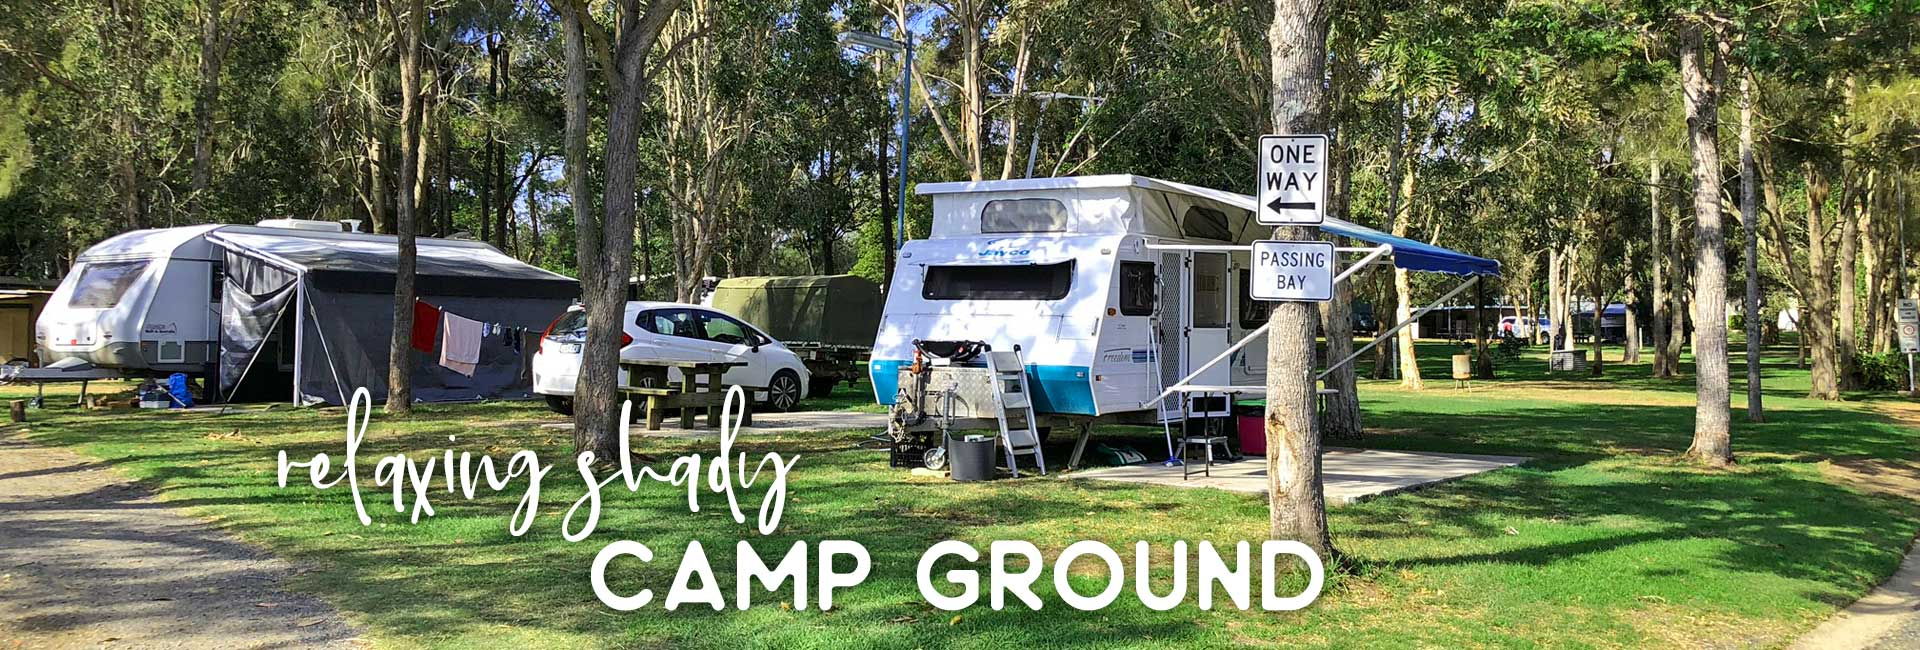 camp grounds at weeroona